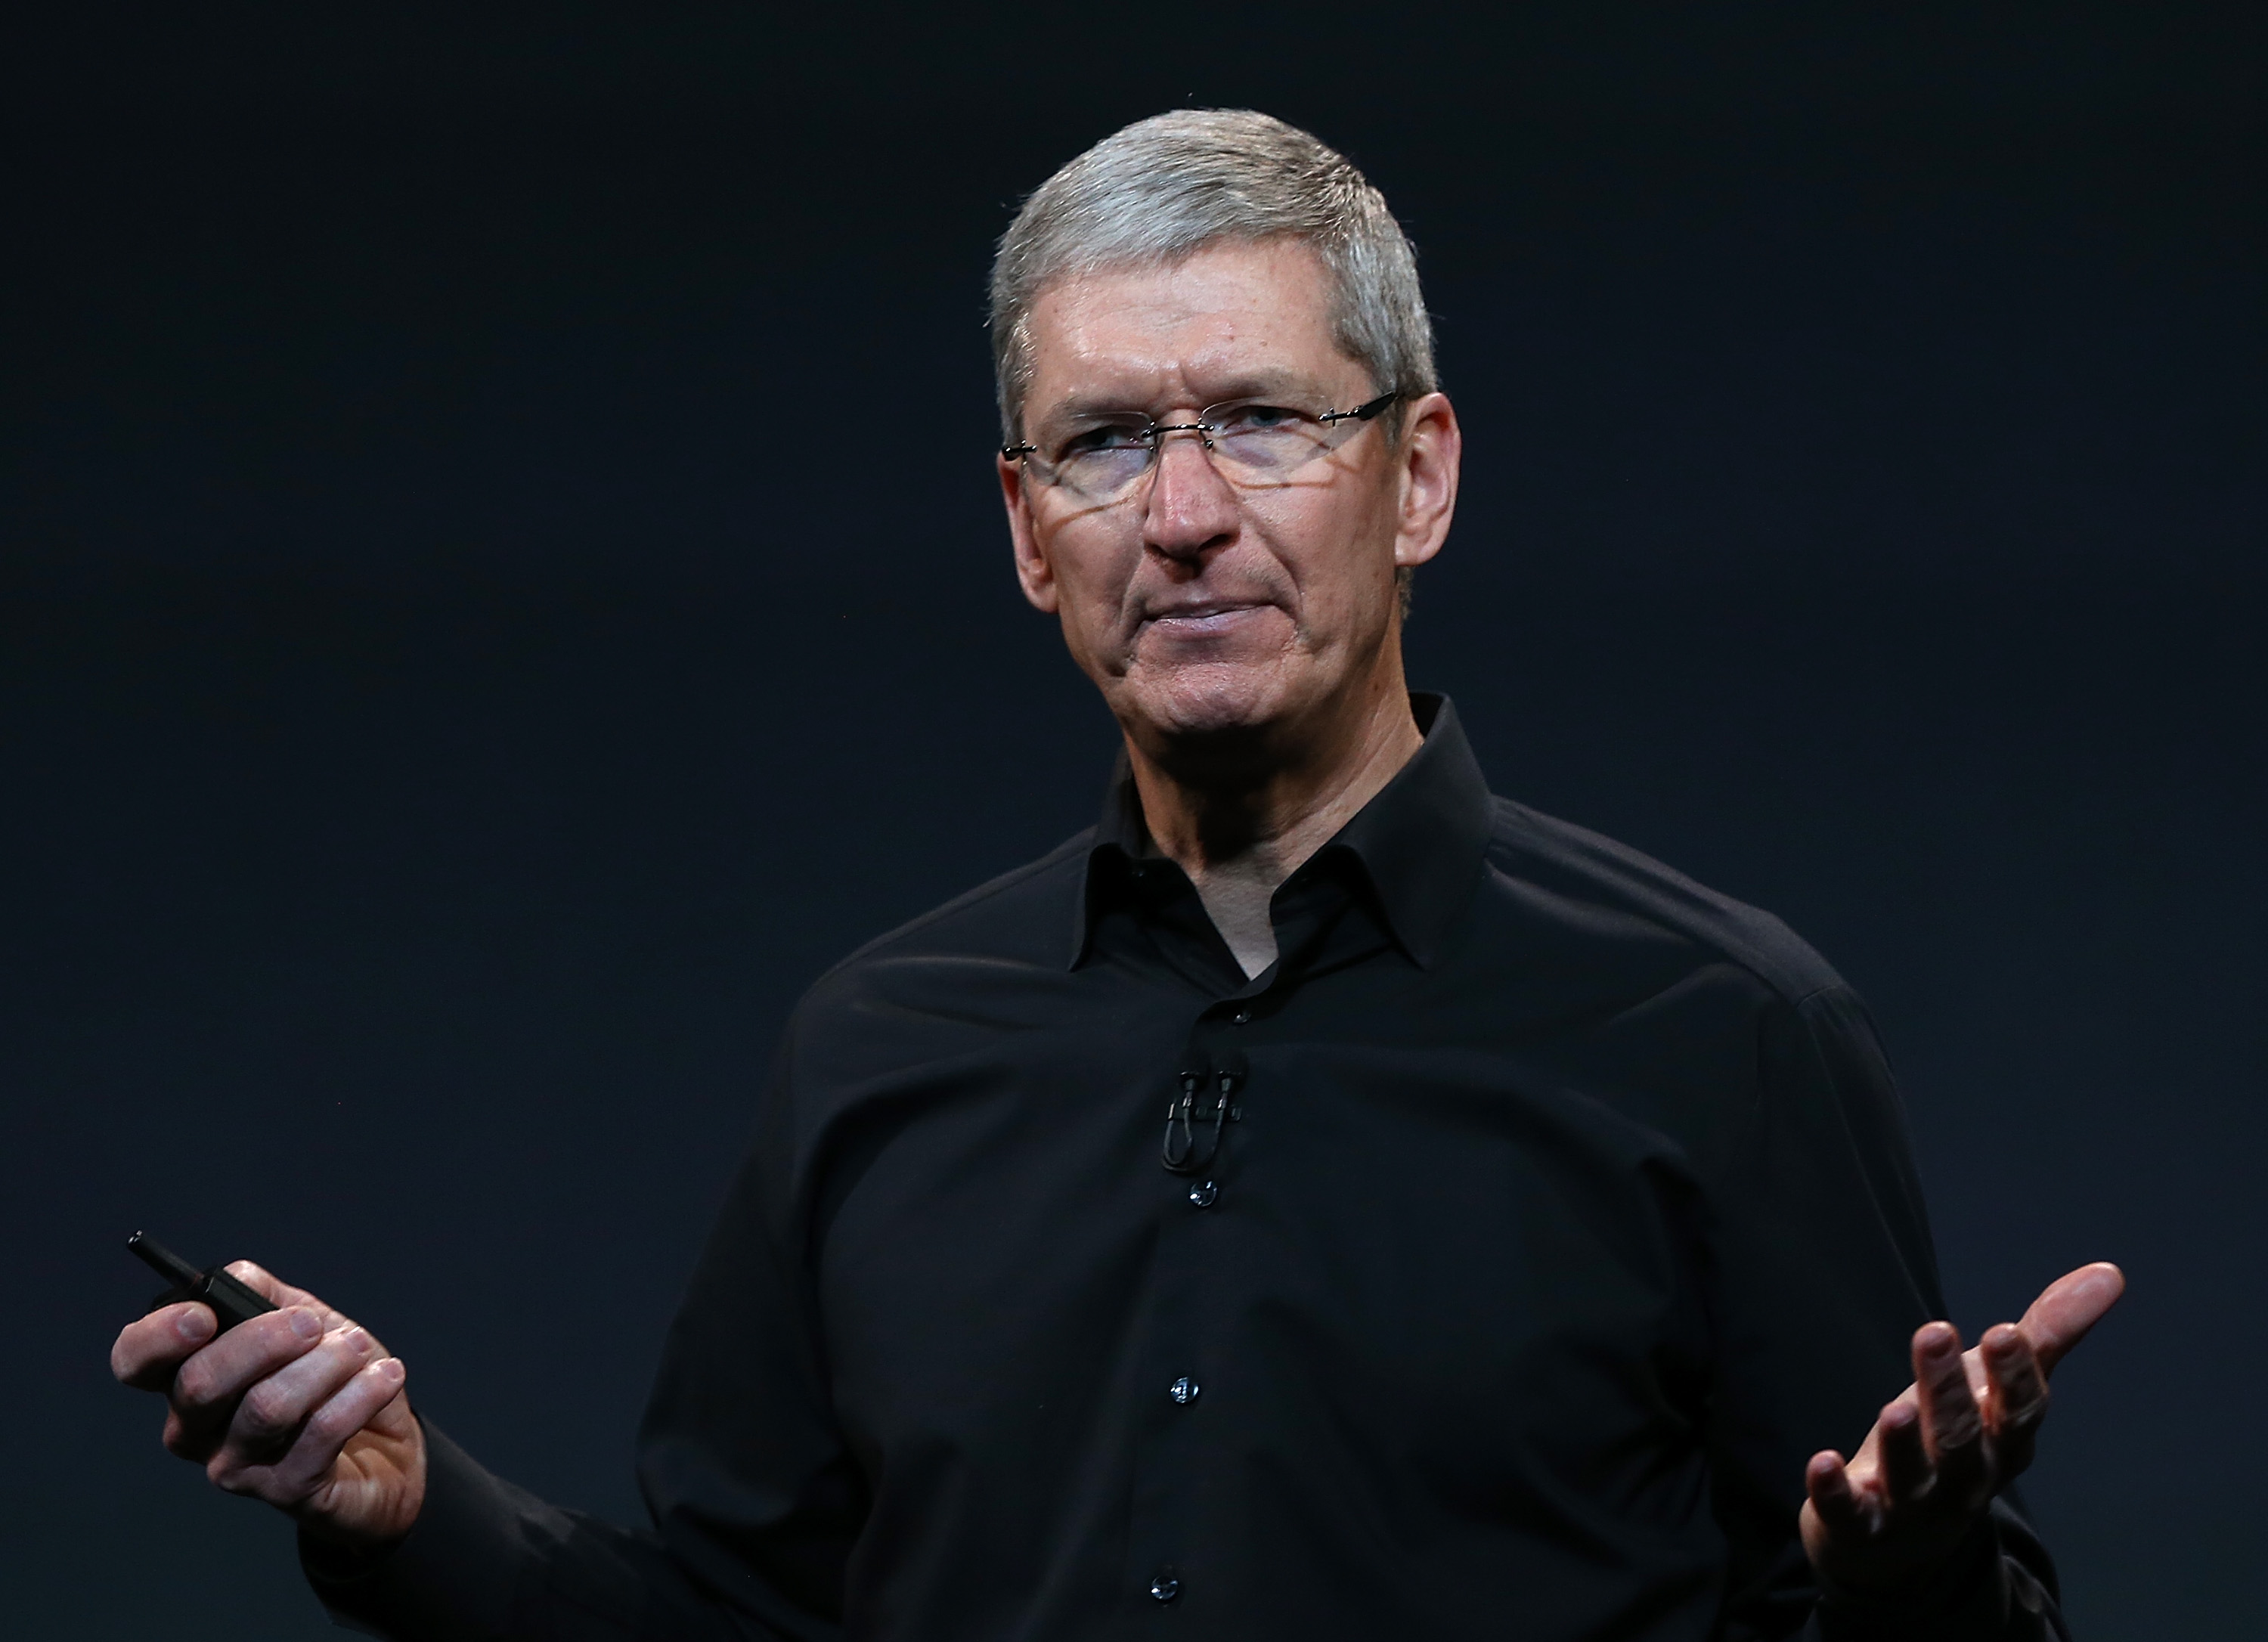 Apple CEO Tim Cook speaks during an Apple announcement at the Yerba Buena Center for the Arts on October 22, 2013 in San Francisco, California.